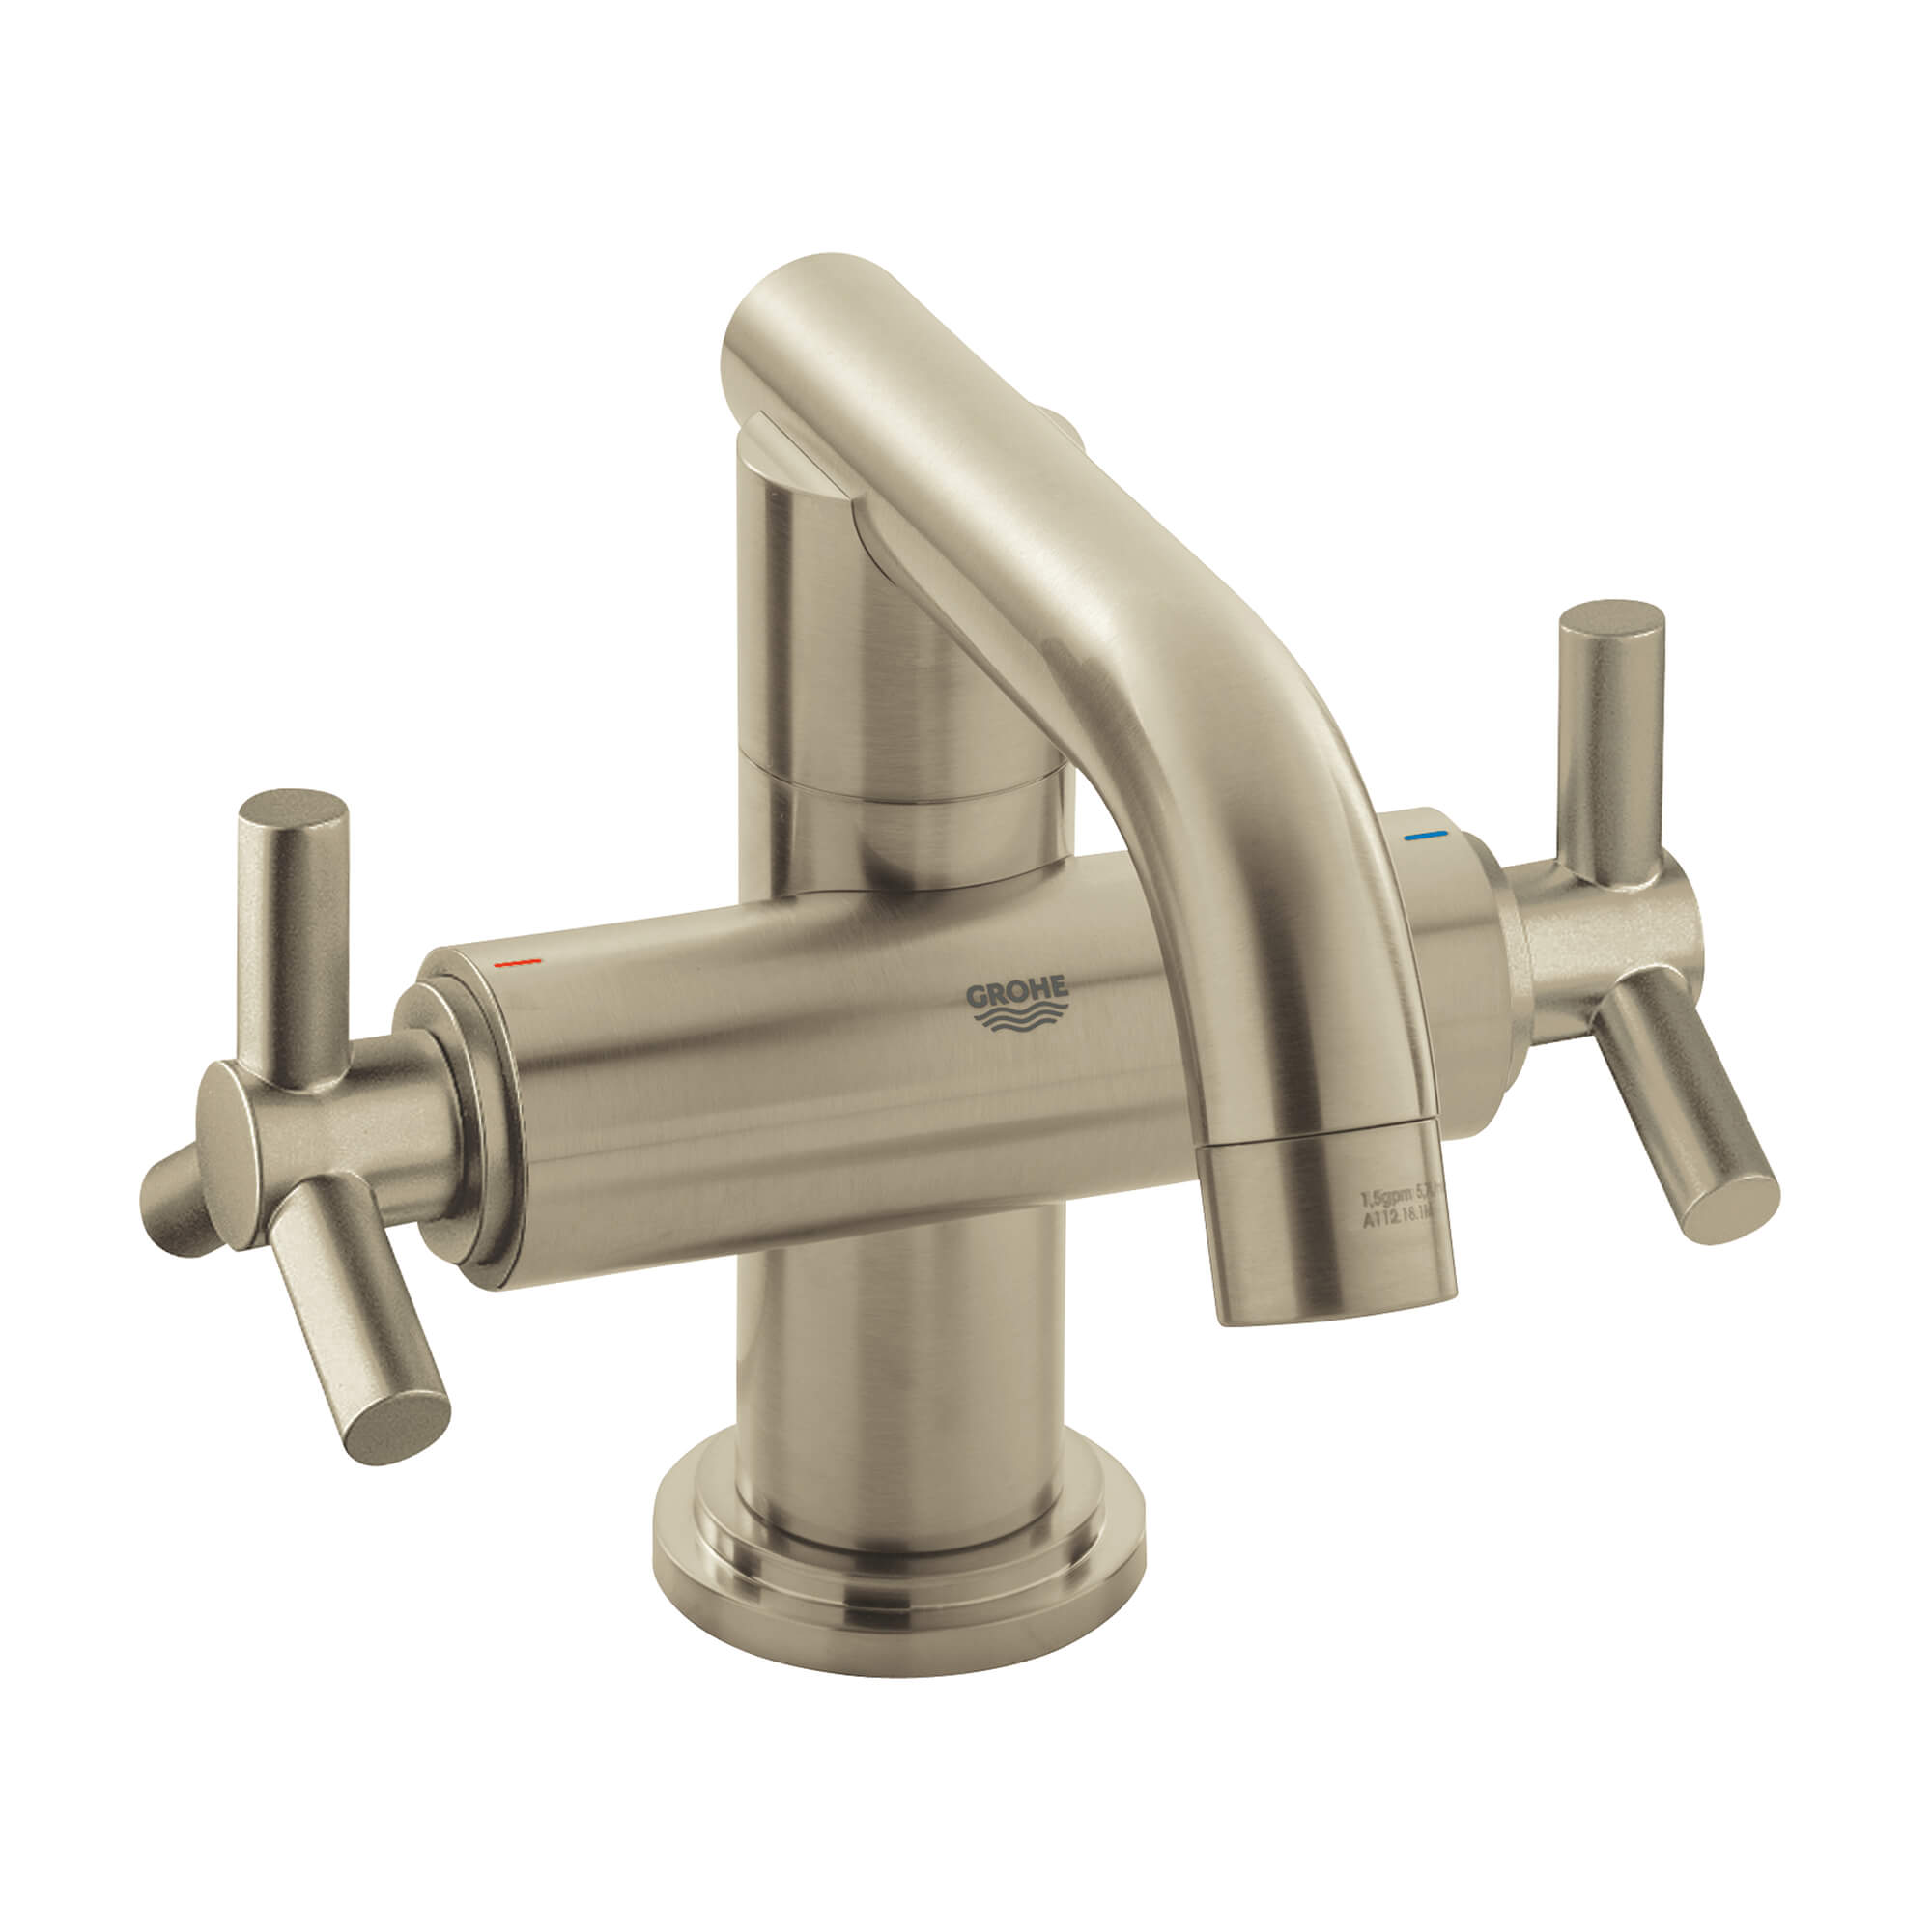 Lever Handles Pair GROHE BRUSHED NICKEL